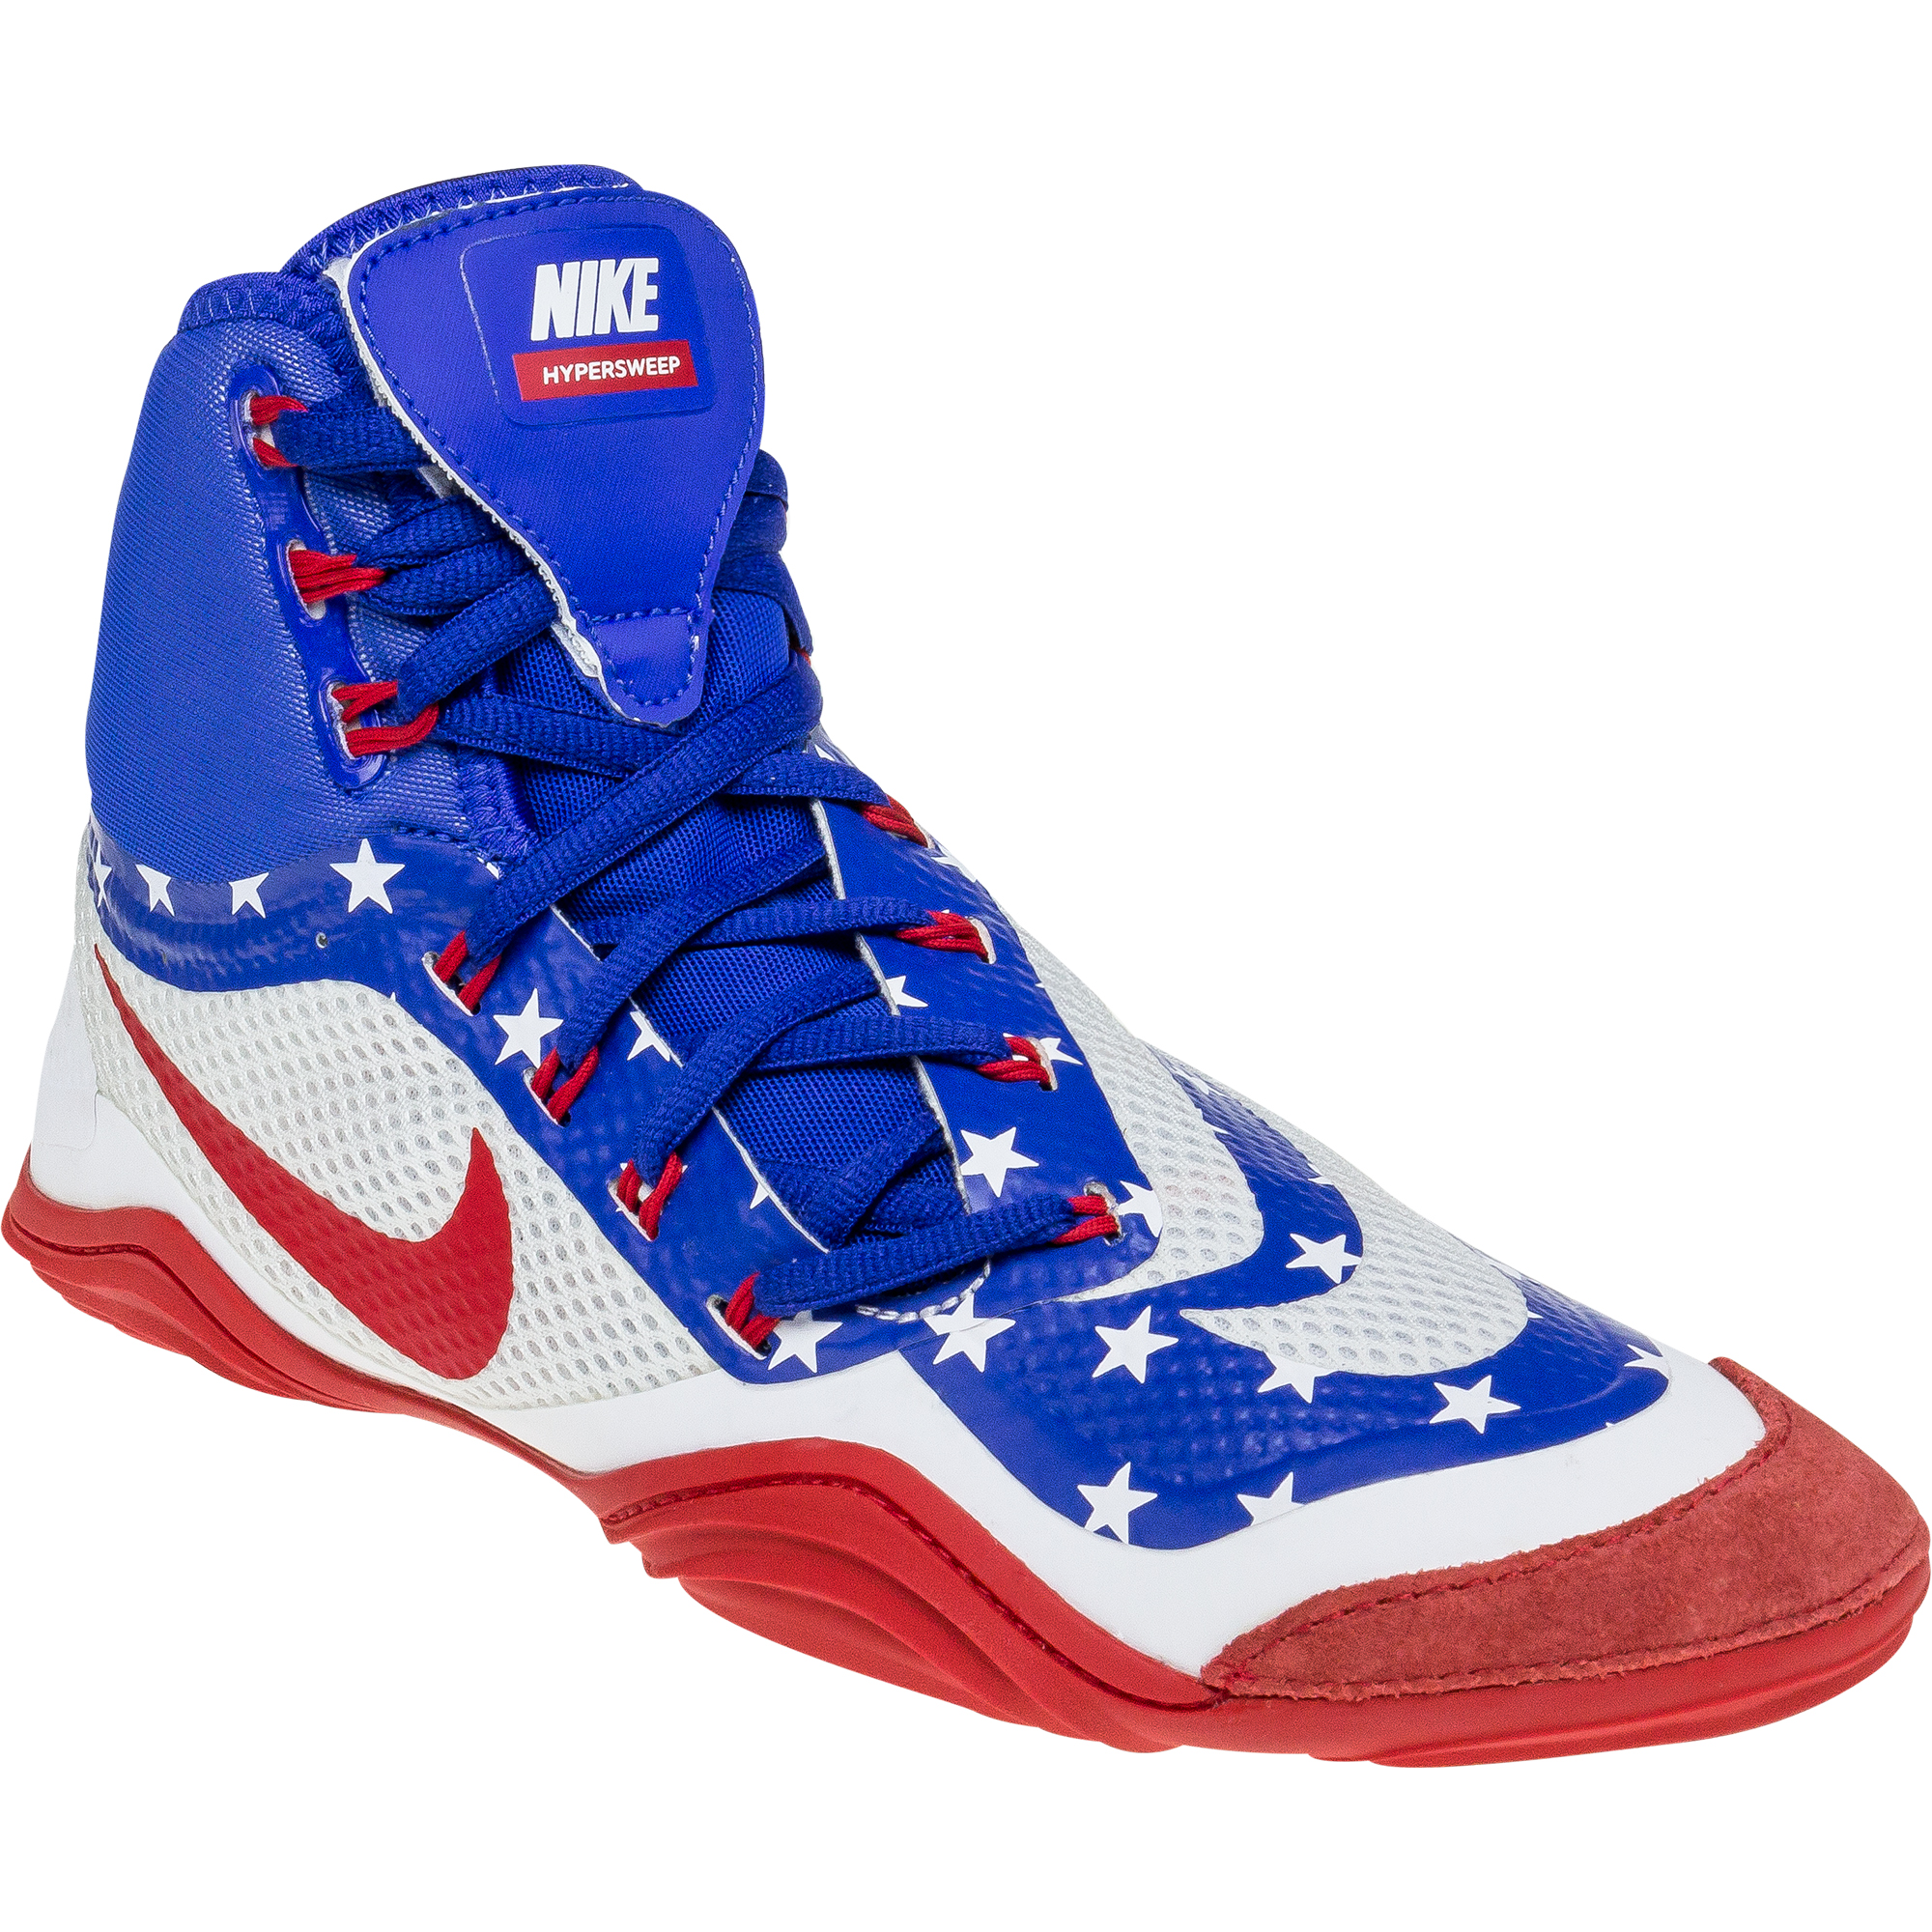 lowest price ab0a2 f1631 Nike Hypersweep USA